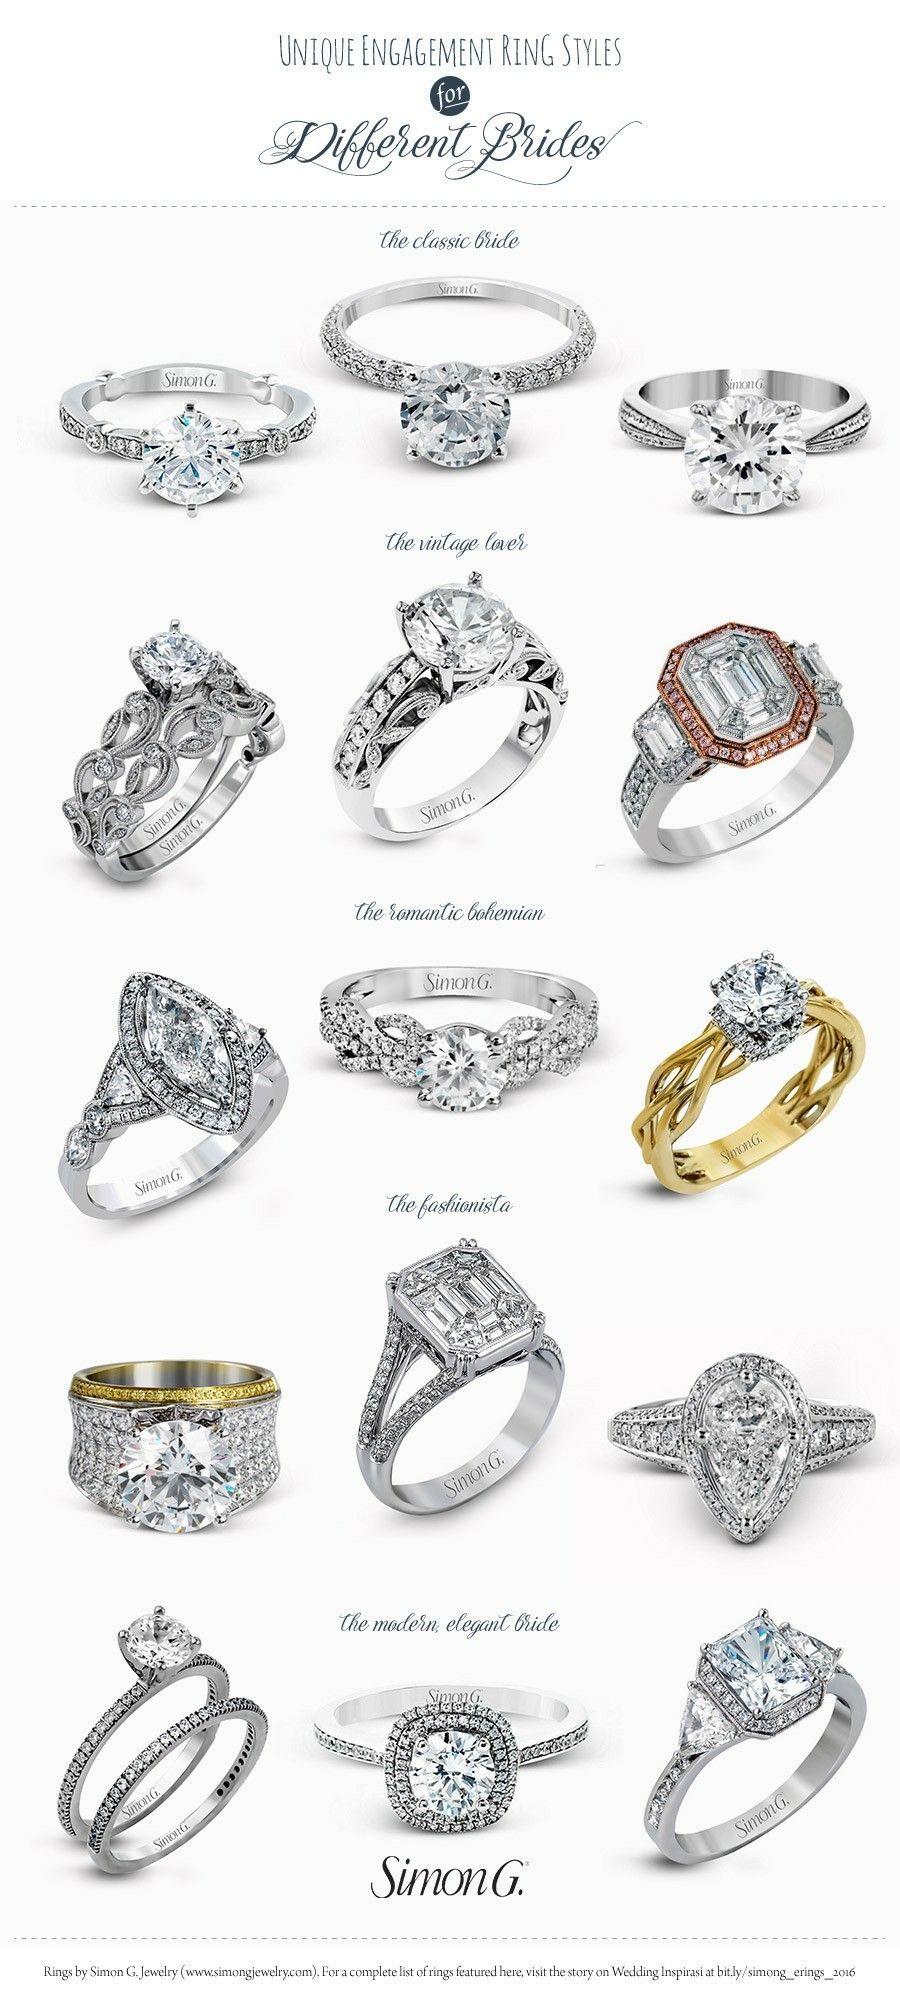 Pin By Jihna Bellows On 3 Wedding Rings Unique Vintage Wedding Ring Styles Engagement Ring Styles